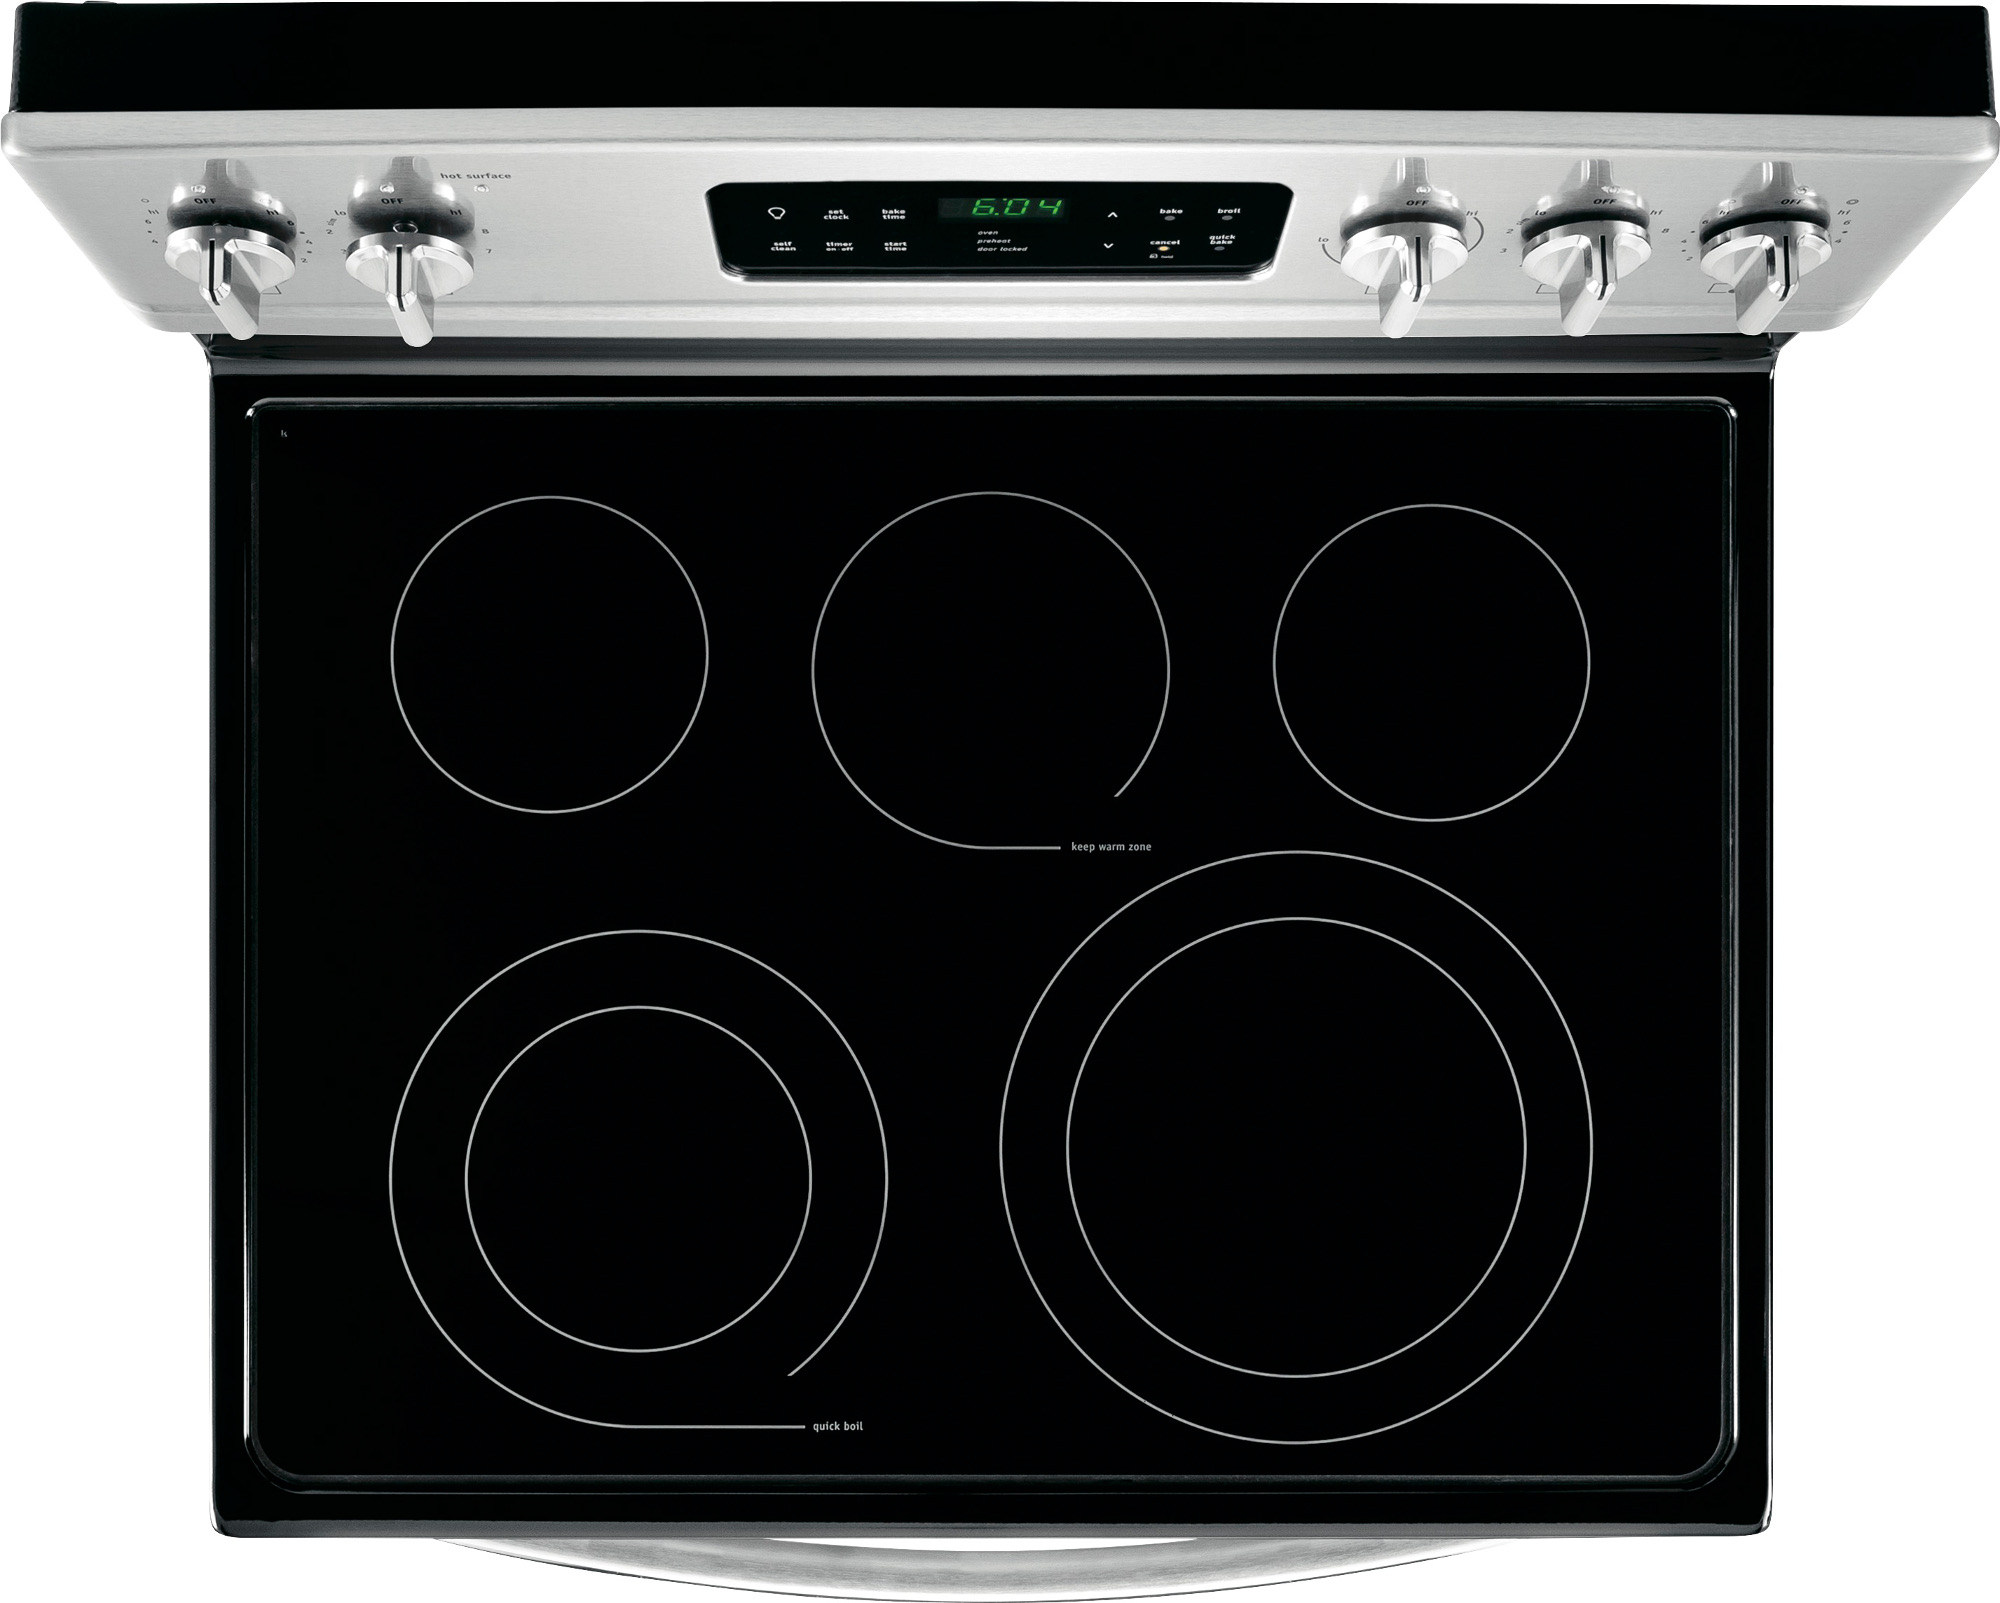 Frigidaire Gallery FGEF3035RF 5.7 cu. ft. Electric Range - Stainless Steel